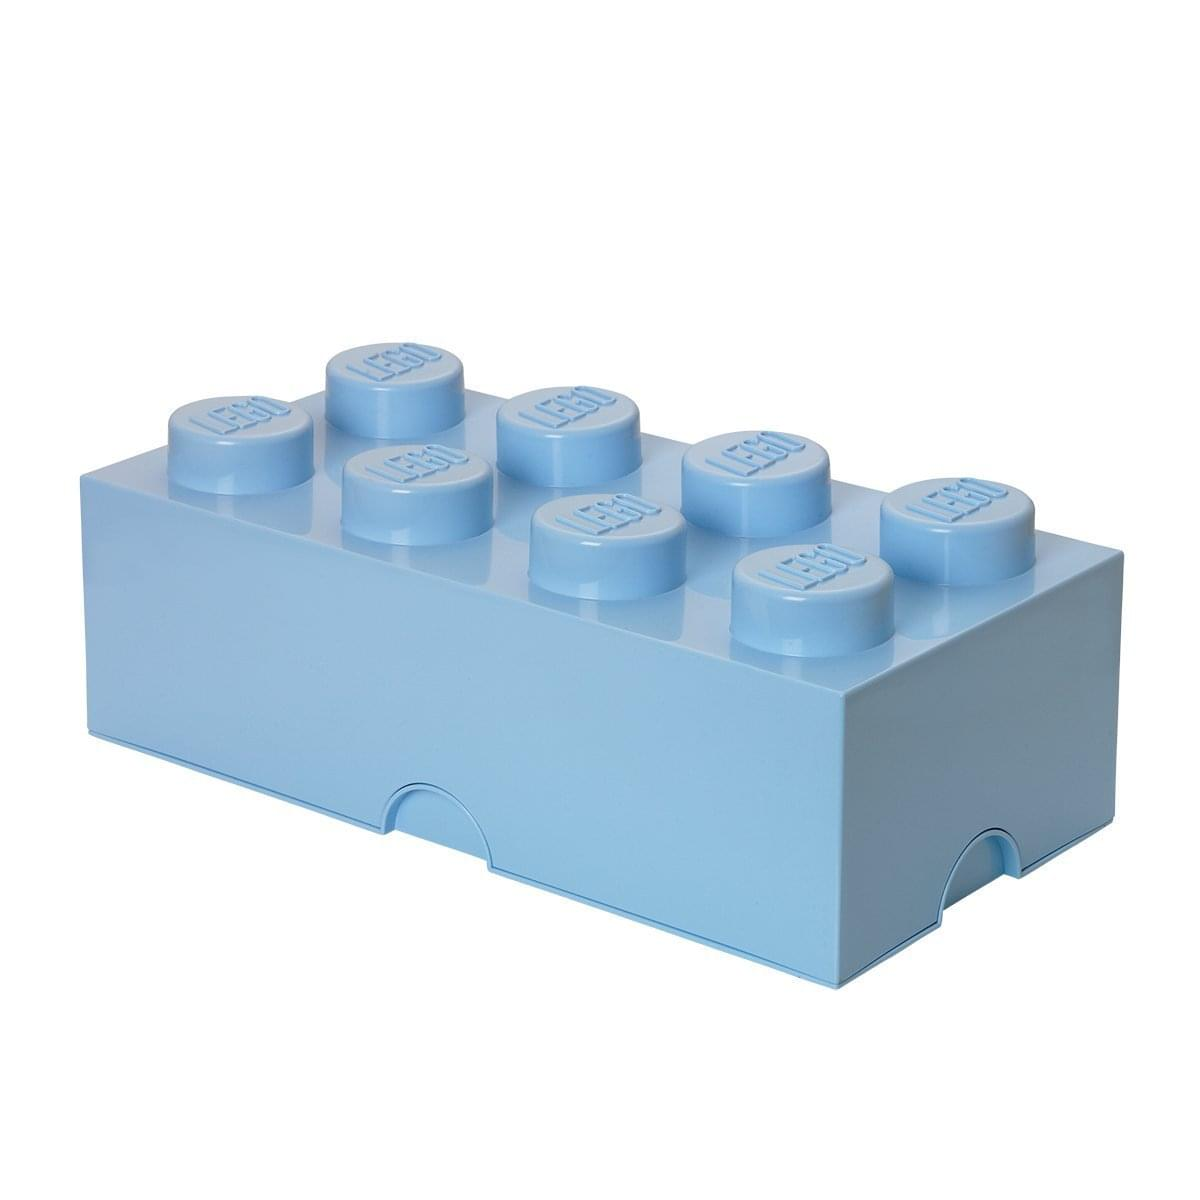 LEGO Storage Brick 8, Light Blue